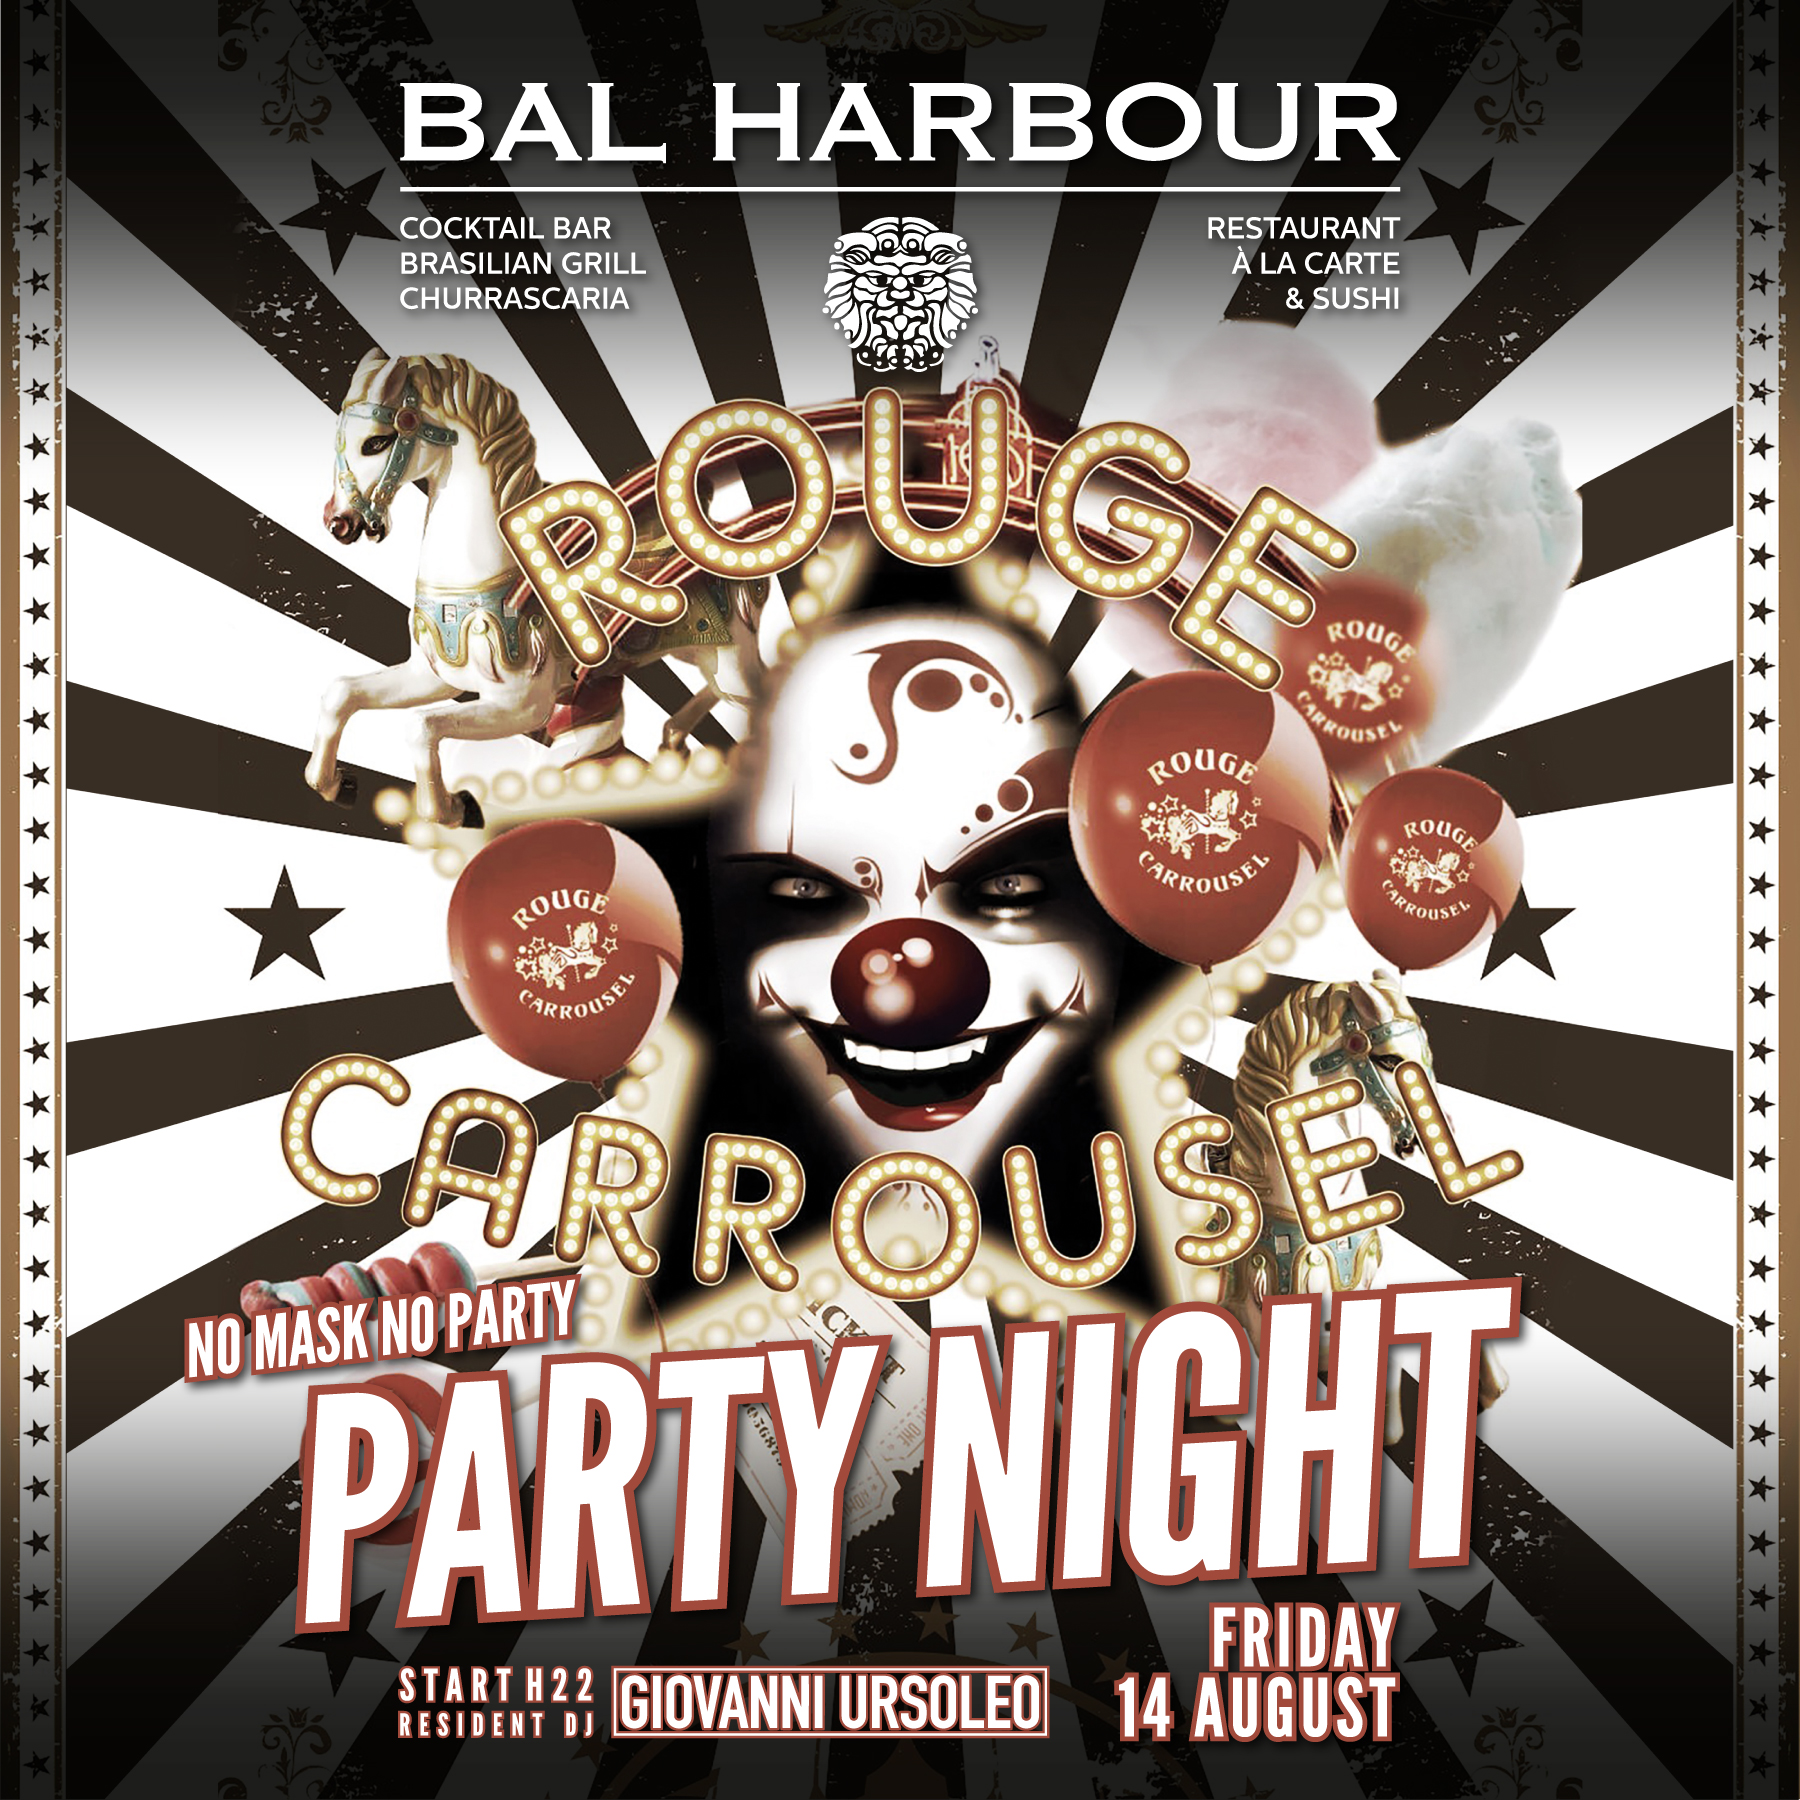 Party Night Rouge Carrousel